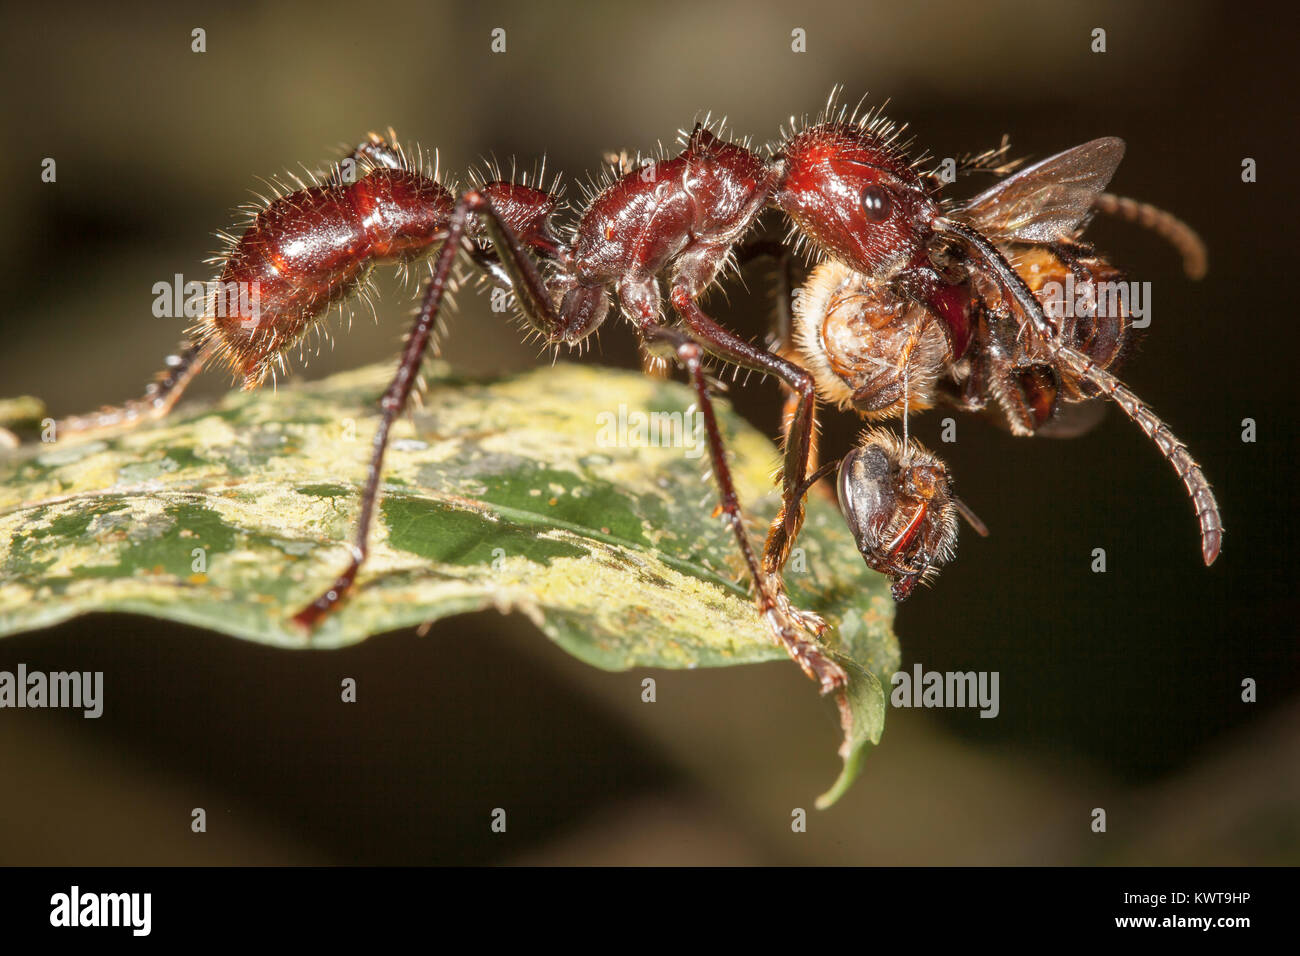 Bullet ants are much feared for their debilitating sting and powerful jaws. This bullet ant has decapitated a bee. Stock Photo